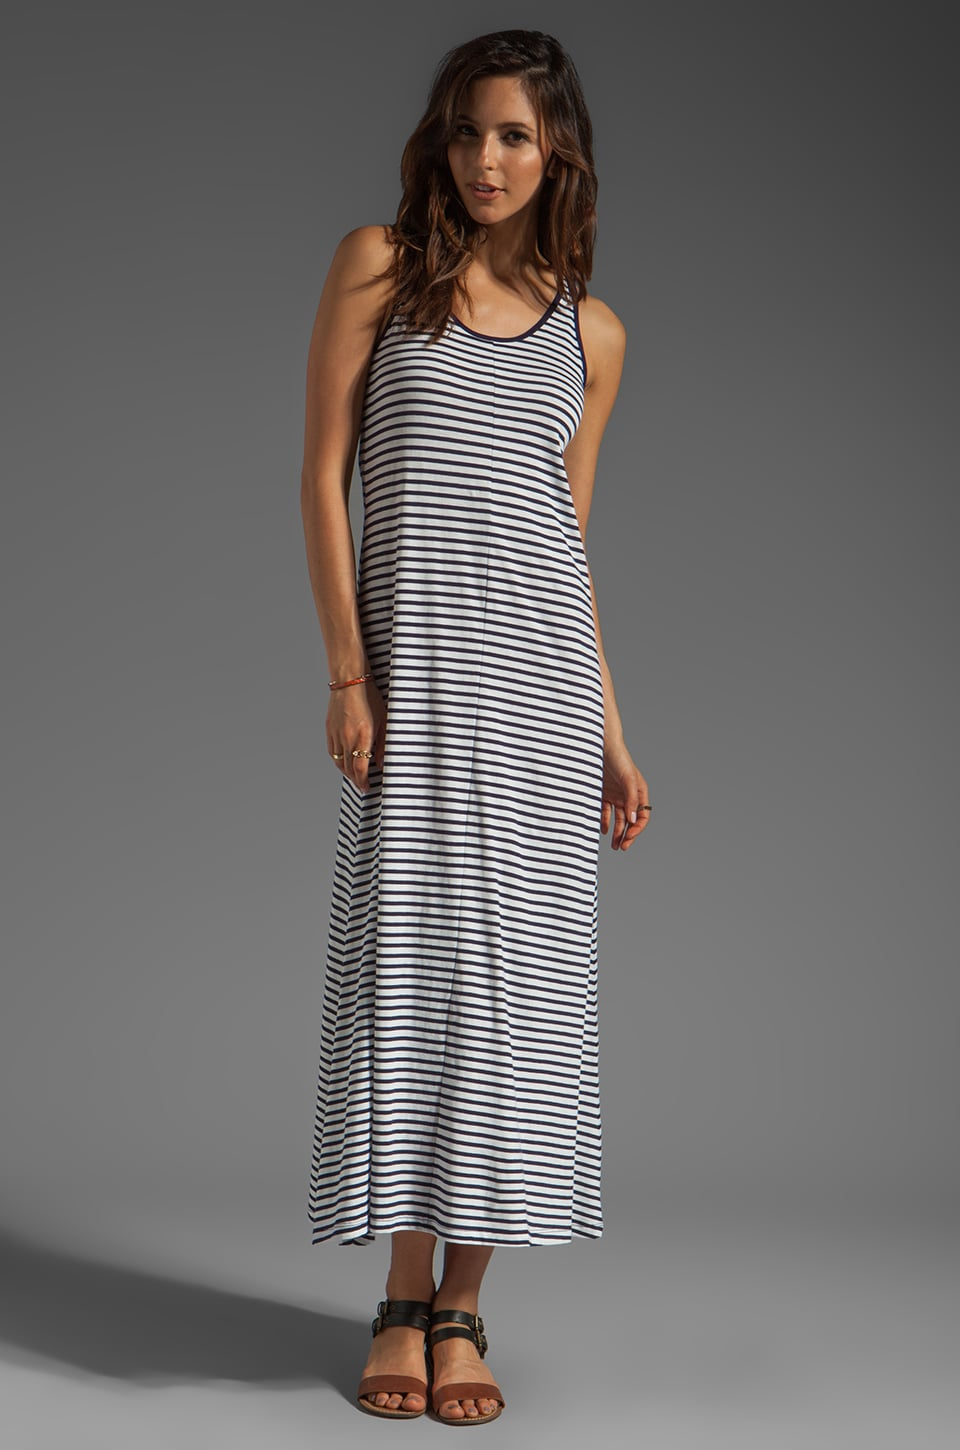 DemyLee Karis Sailor Stripe Maxi Dress in White/Navy